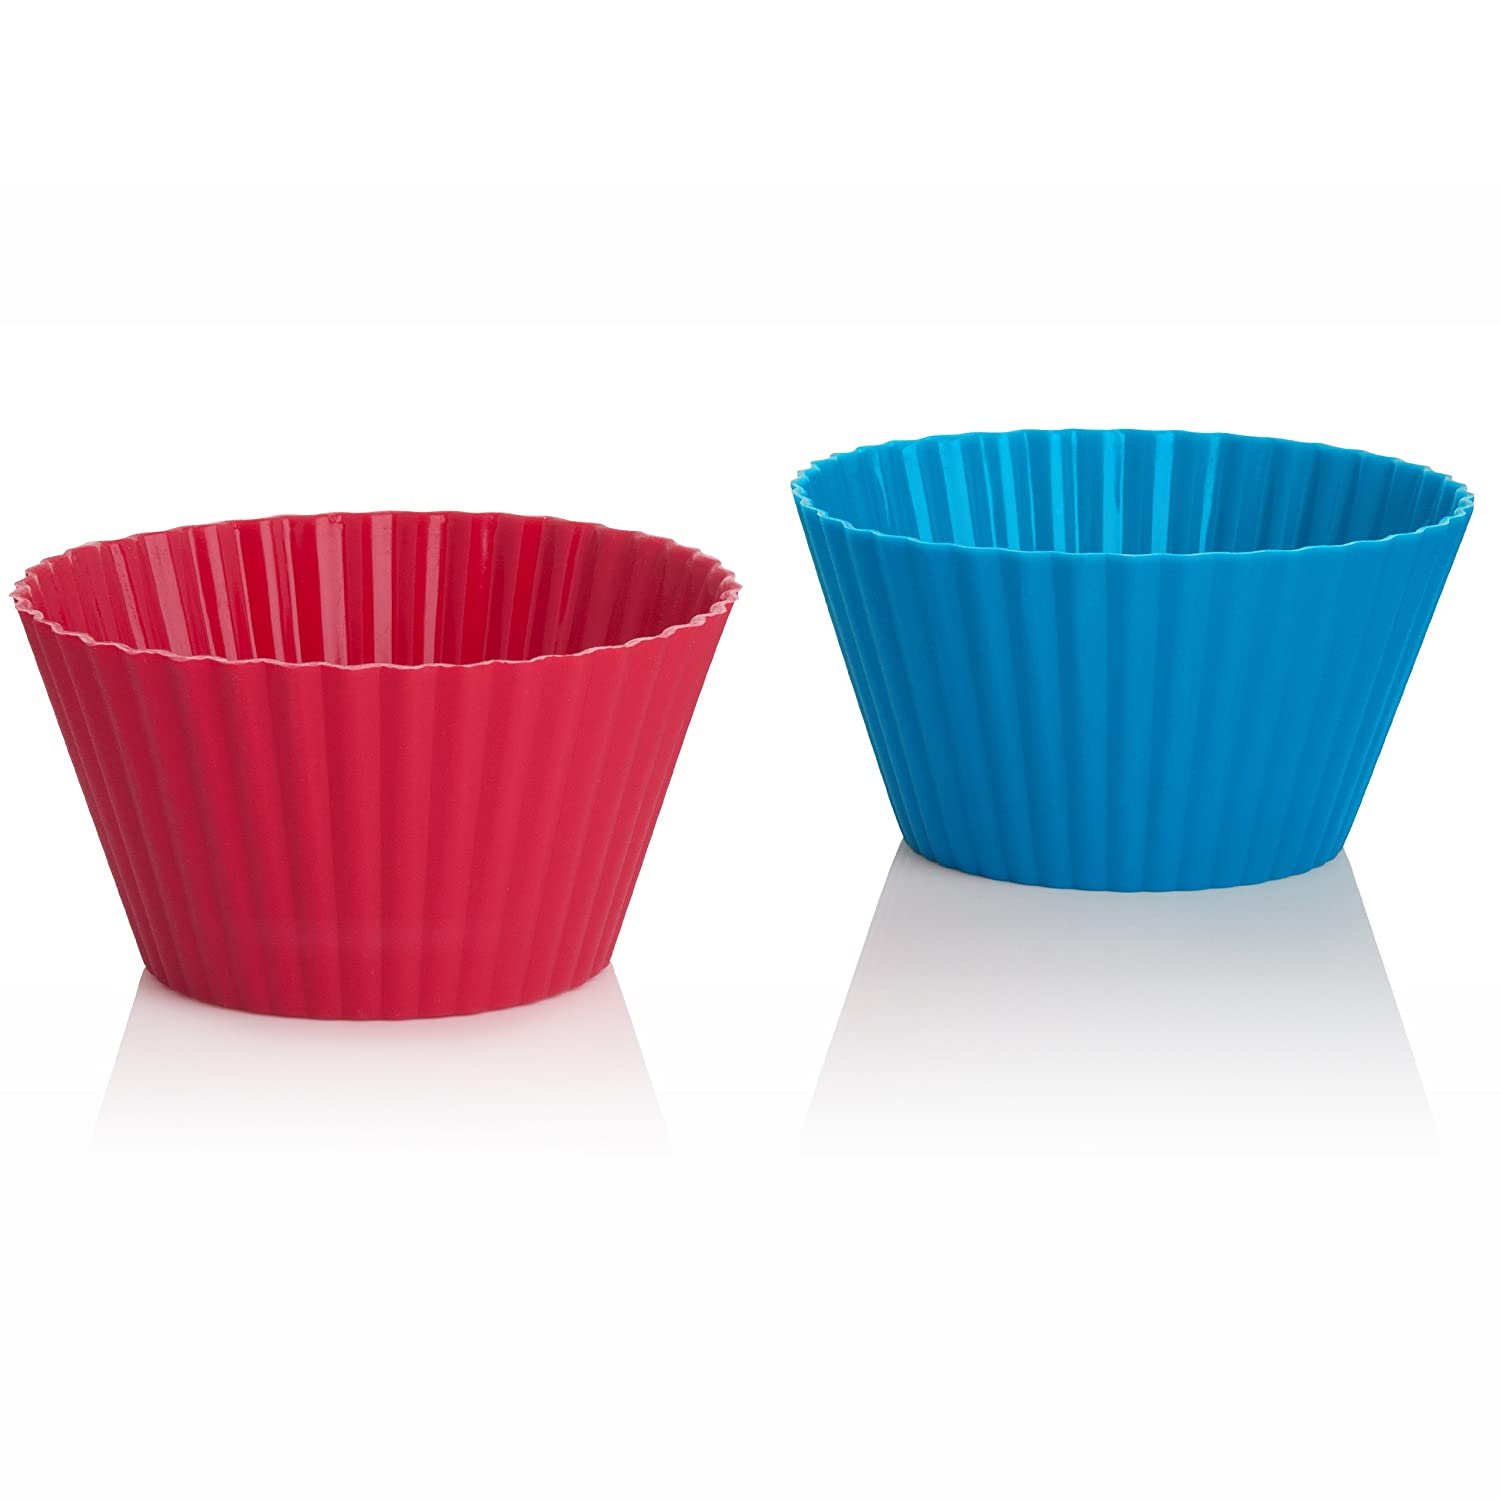 Trudeau Silicone Muffin Cups - Fun and festive assorted colors; set includes red, green and blue colored cups